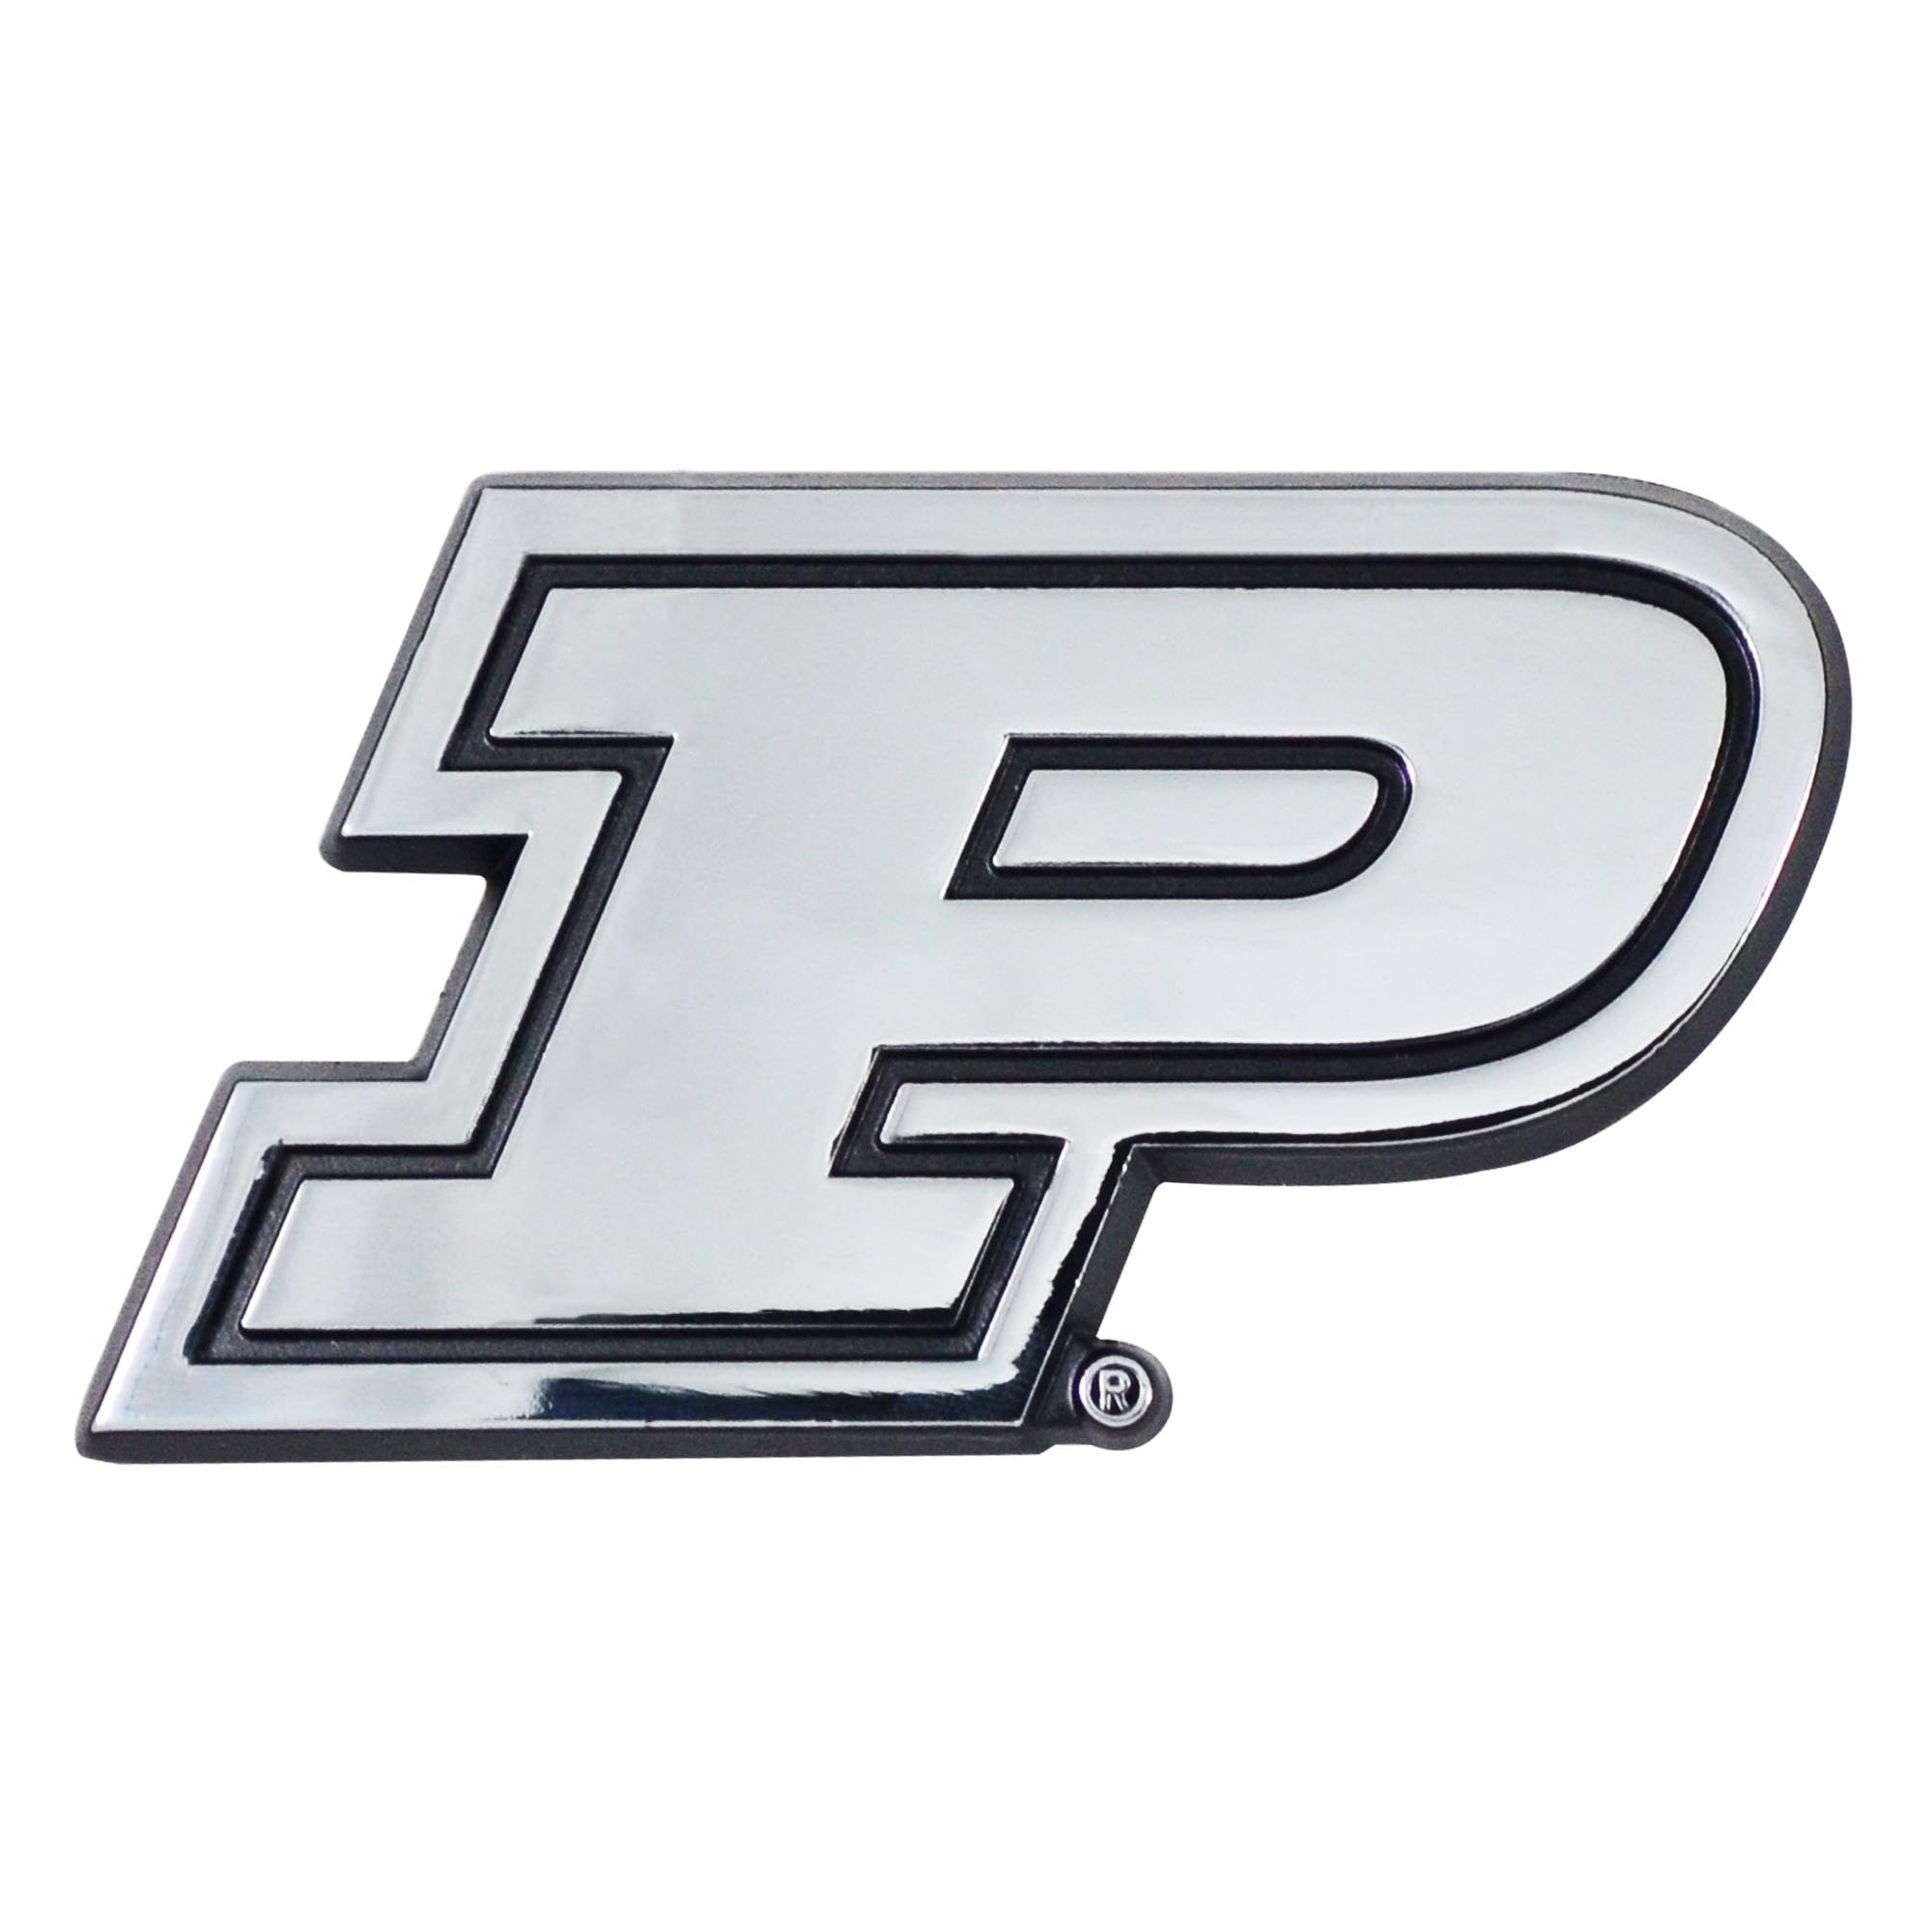 Purdue Boilermakers 3D Chrome Emblem